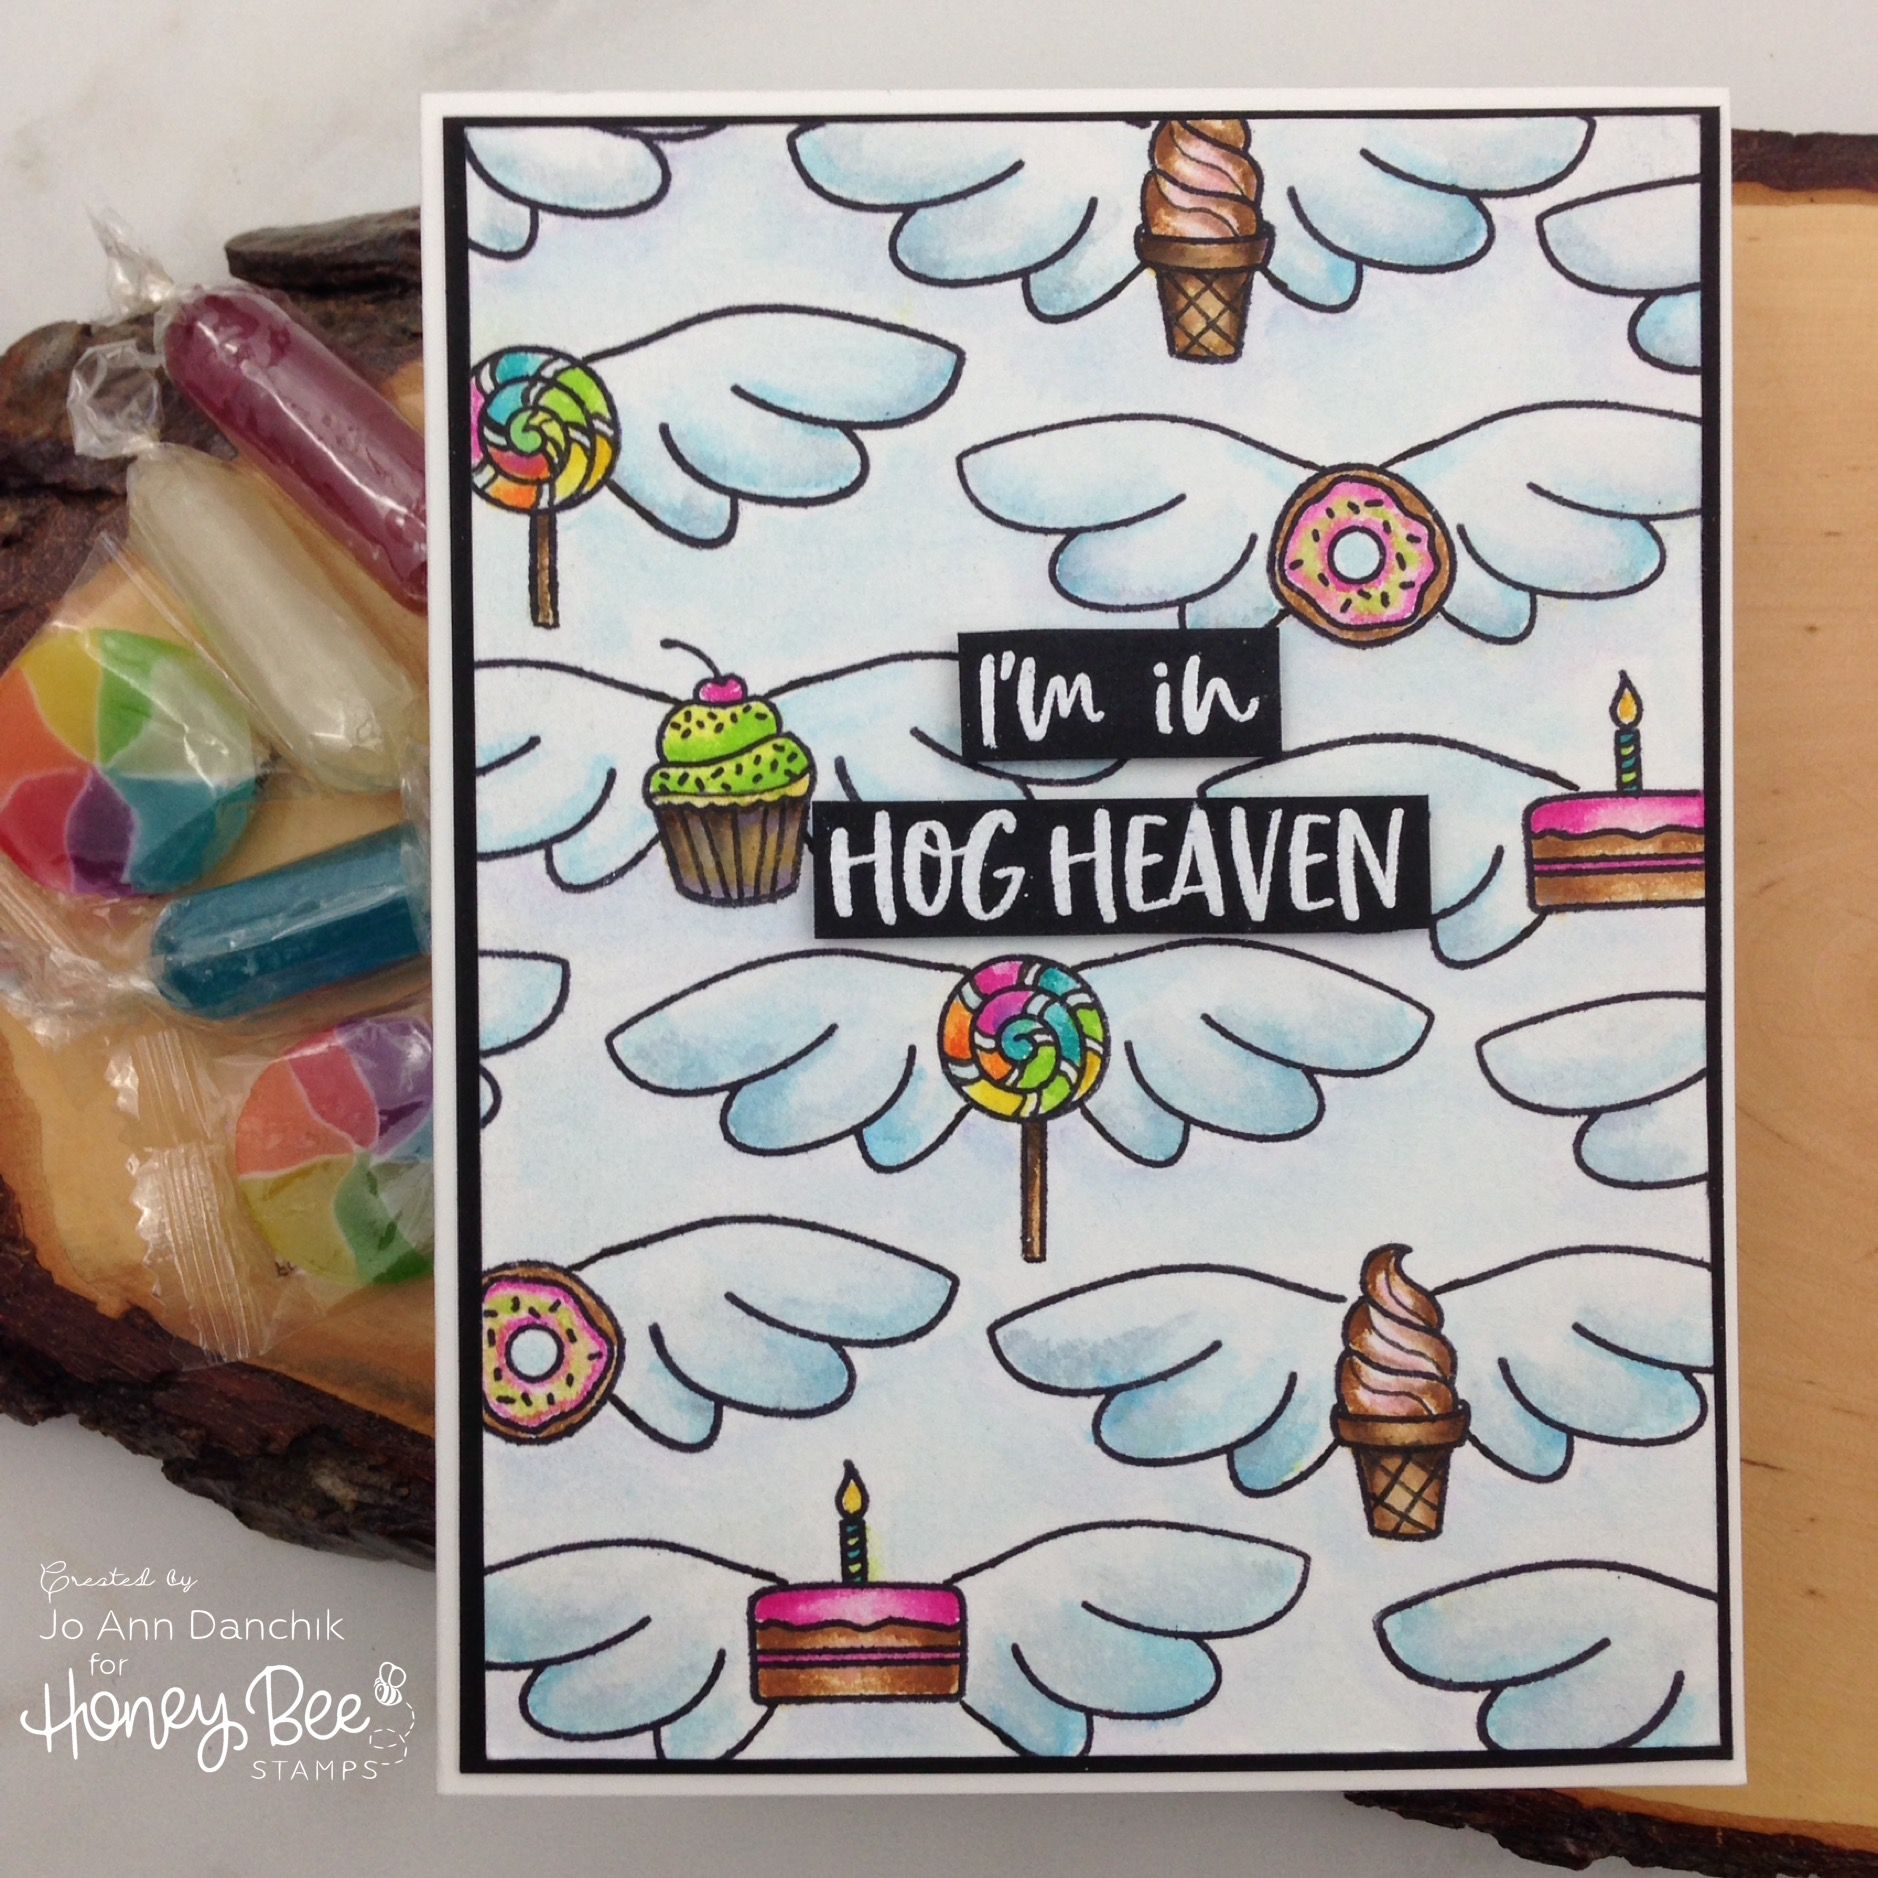 Creative Sundays With Jo Ann: I'm In Hog Heaven